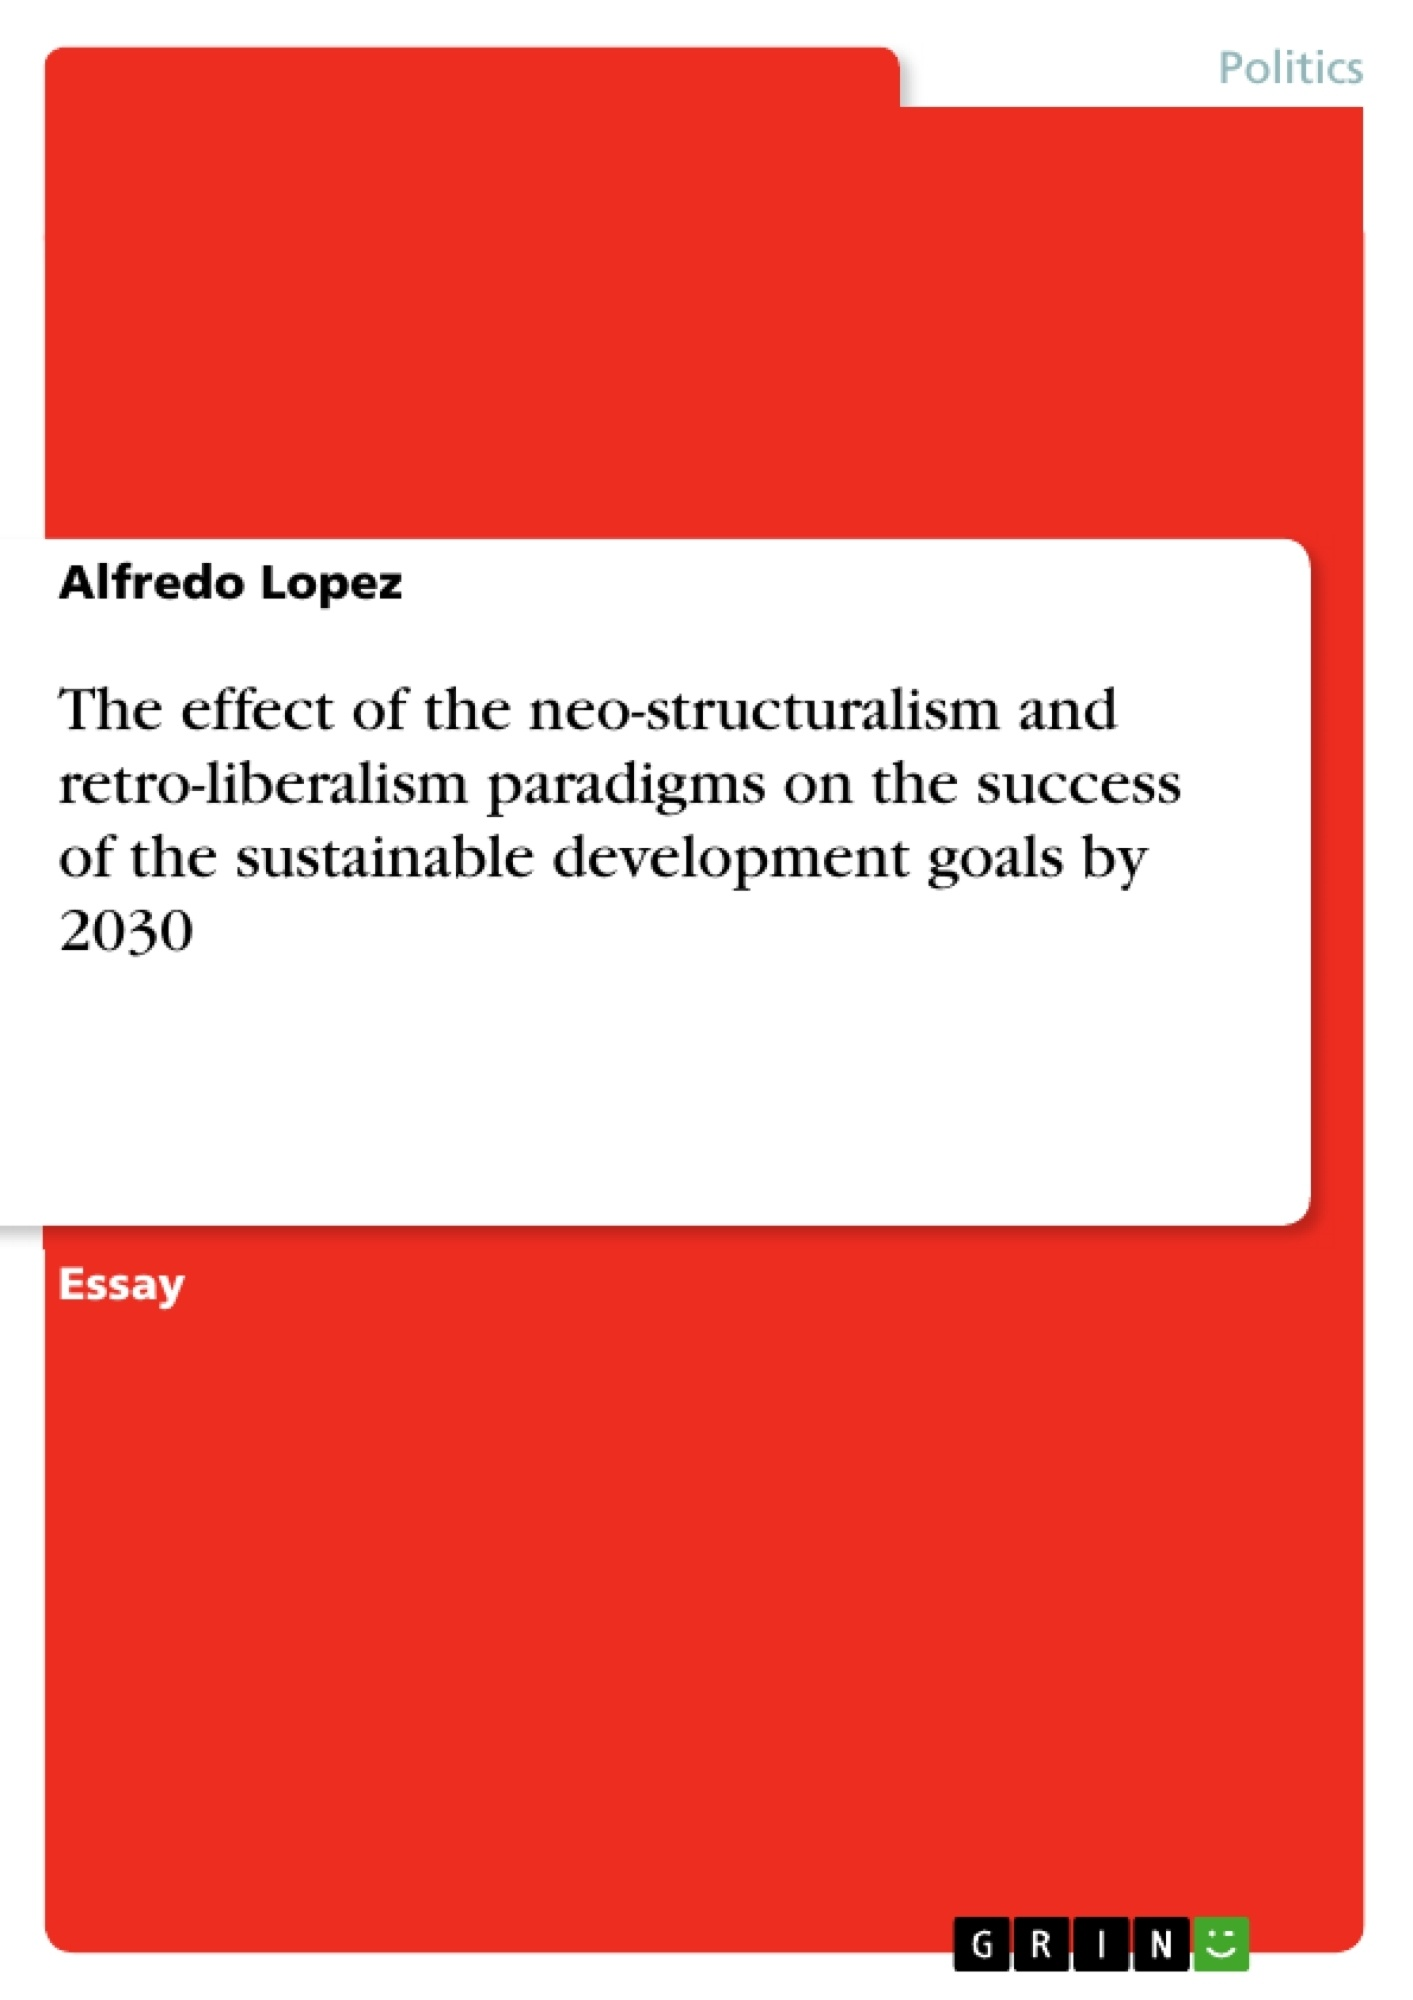 Title: The effect of the neo-structuralism and retro-liberalism paradigms on the success of the sustainable development goals by 2030